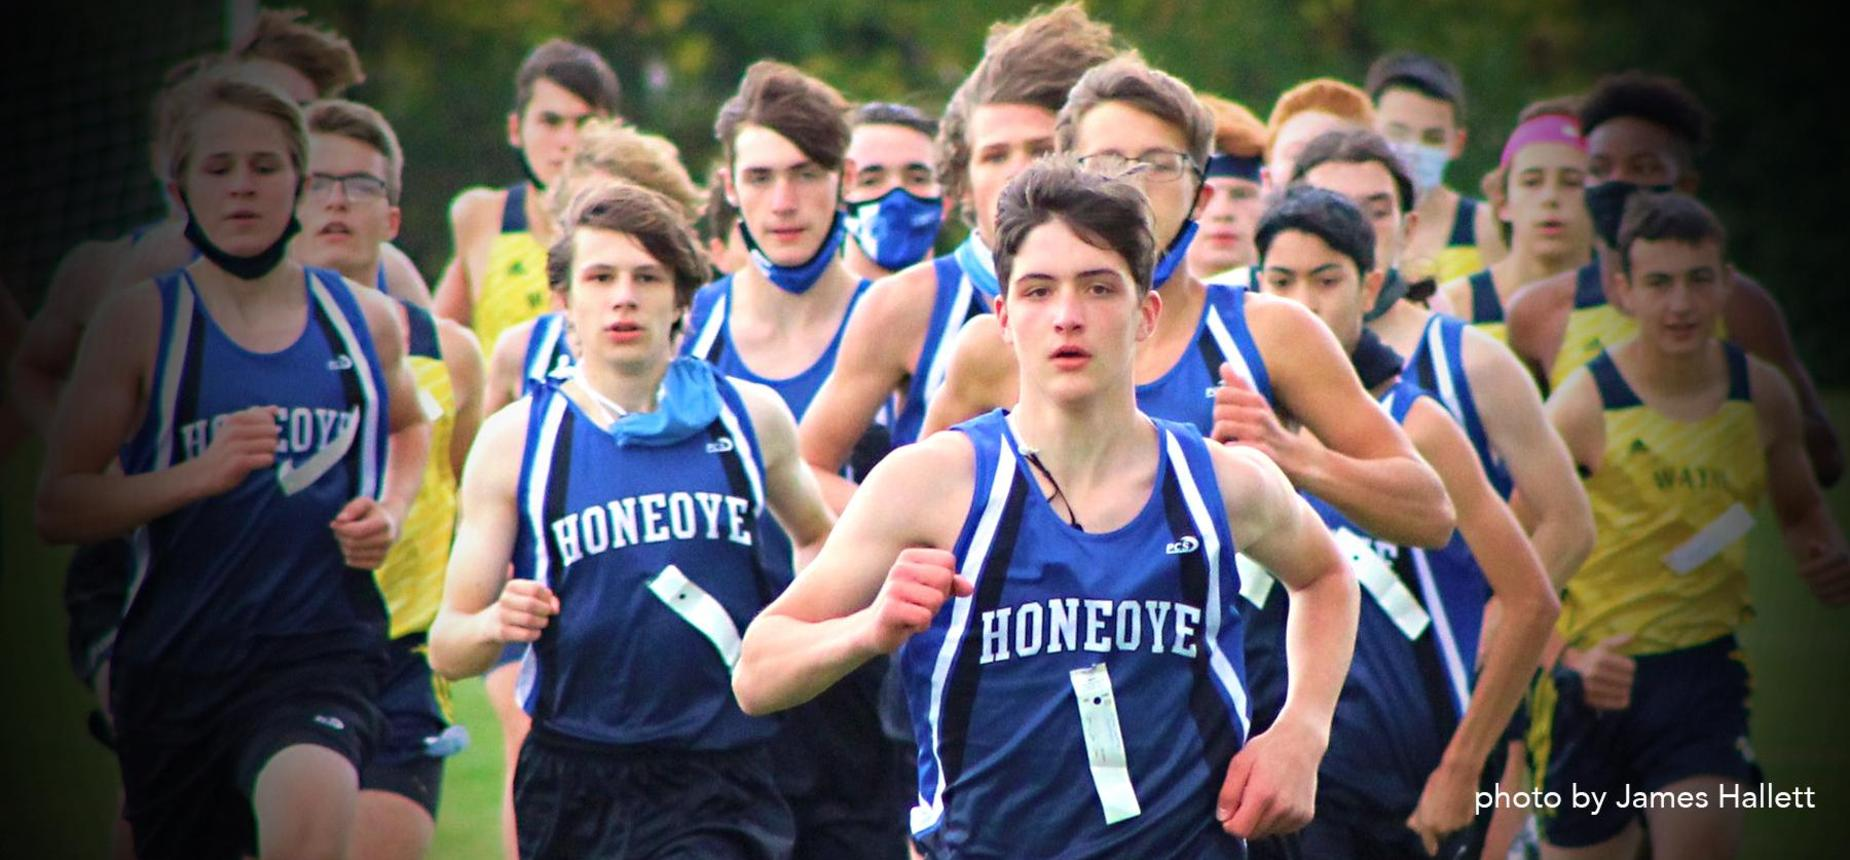 Cross country runners with Honeoye in the lead